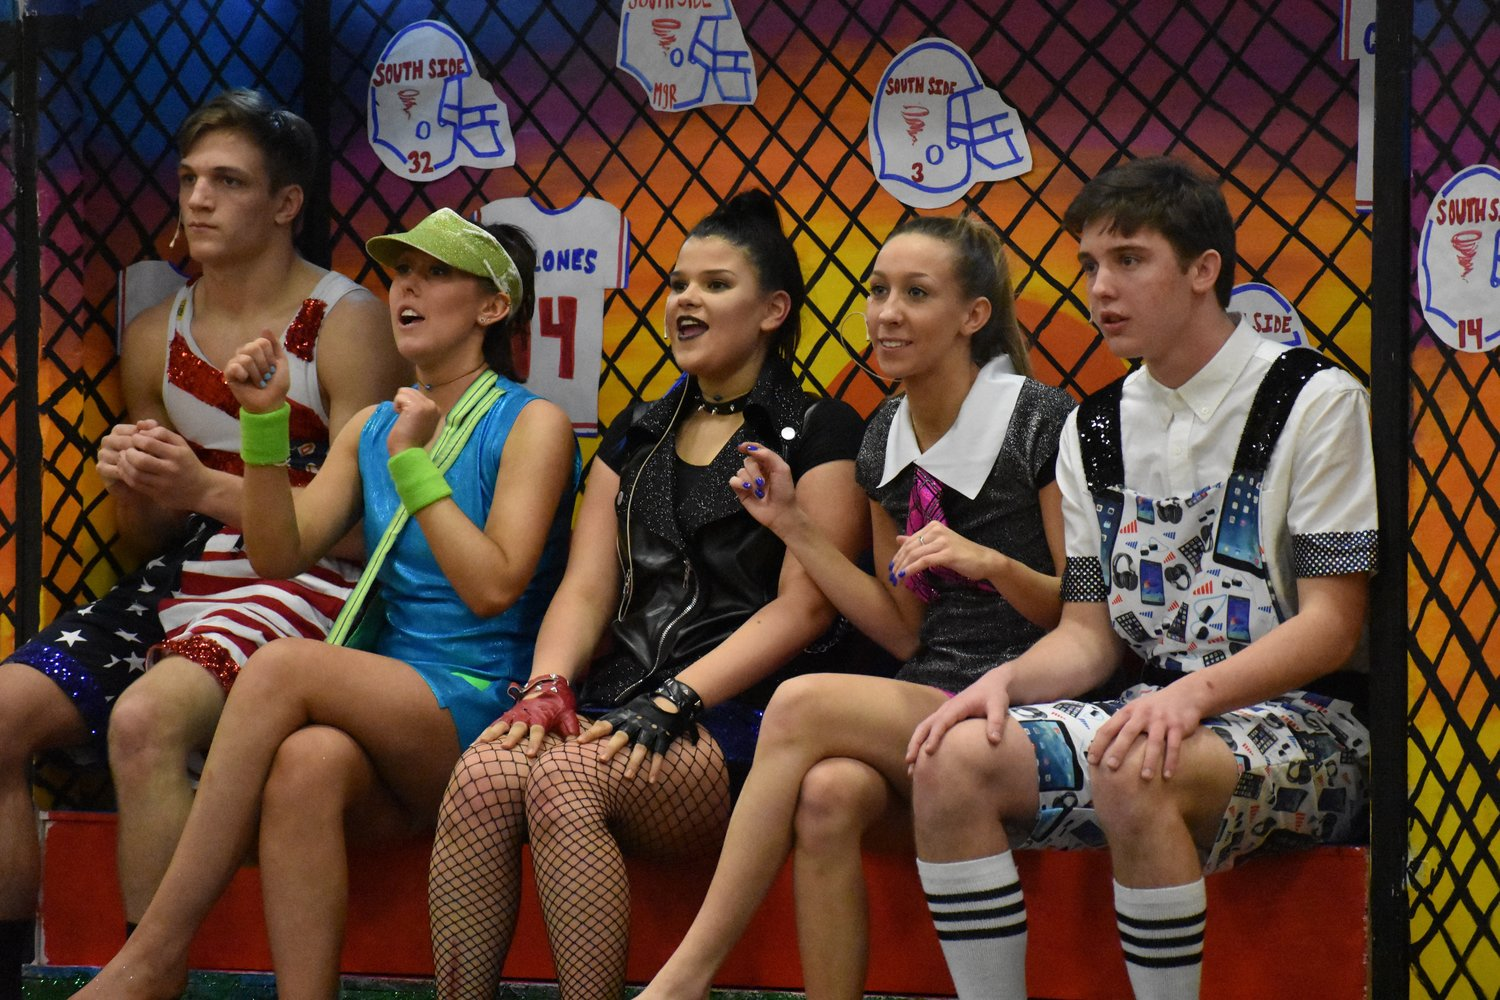 Kyle Mosher, far left, Ciara Byrne, Winnie Chiffriller, Allie Gallego and James Hennessey starred in the Blue Team's skit.